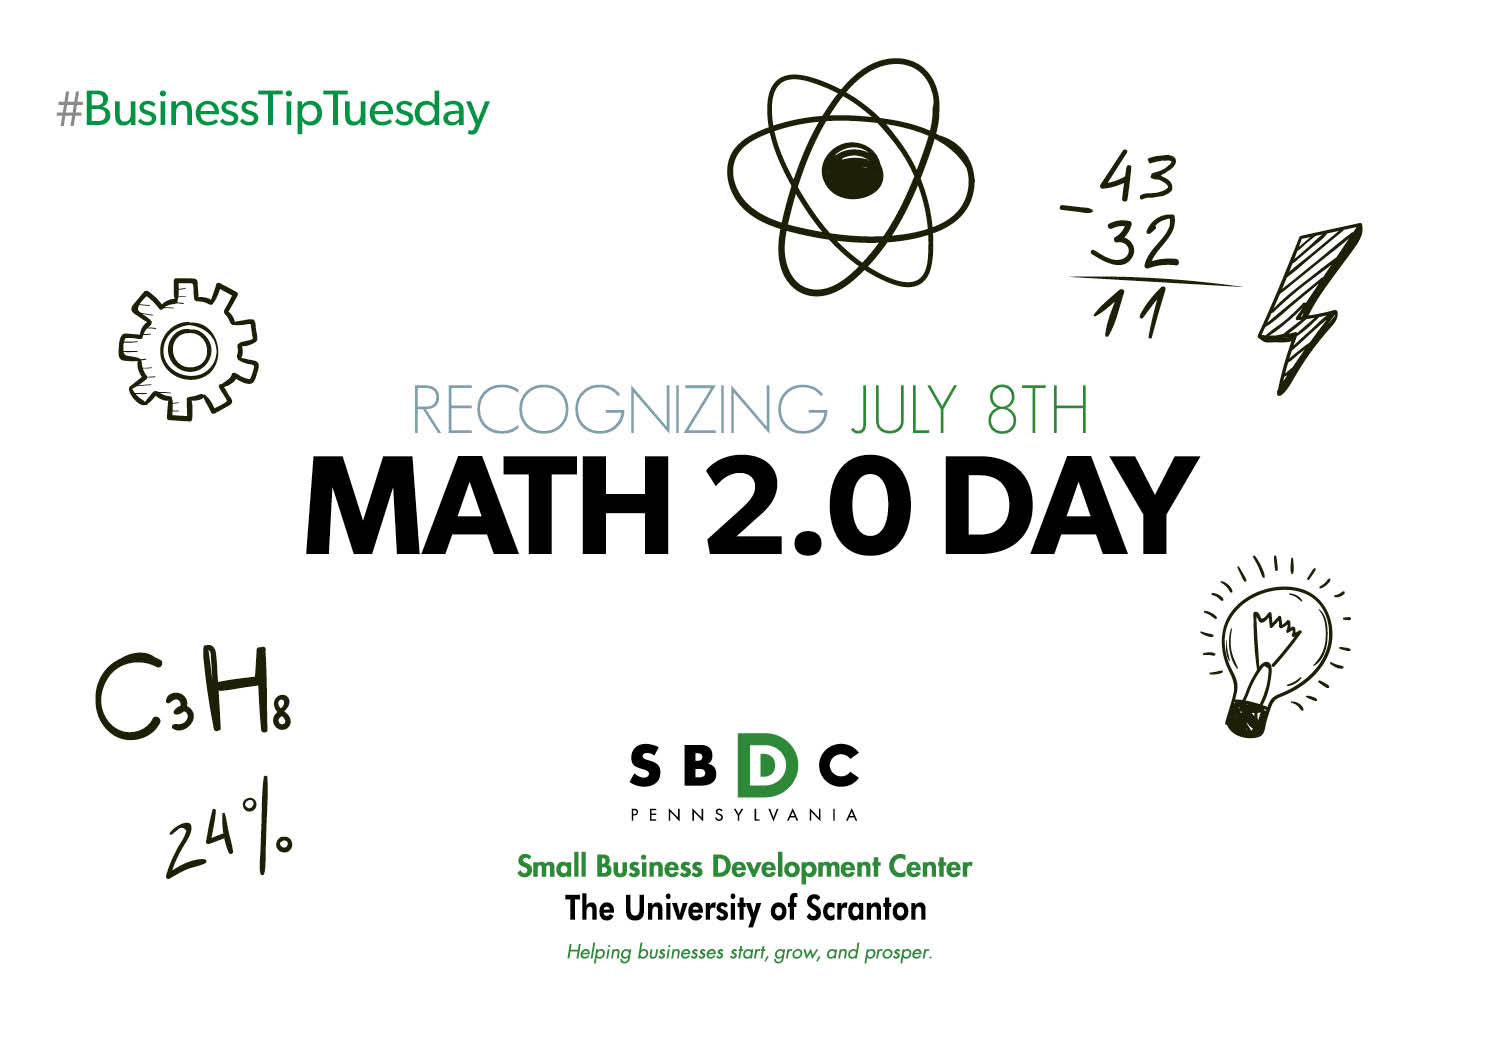 #BusinessTipTuesday: Math 2.0 Day